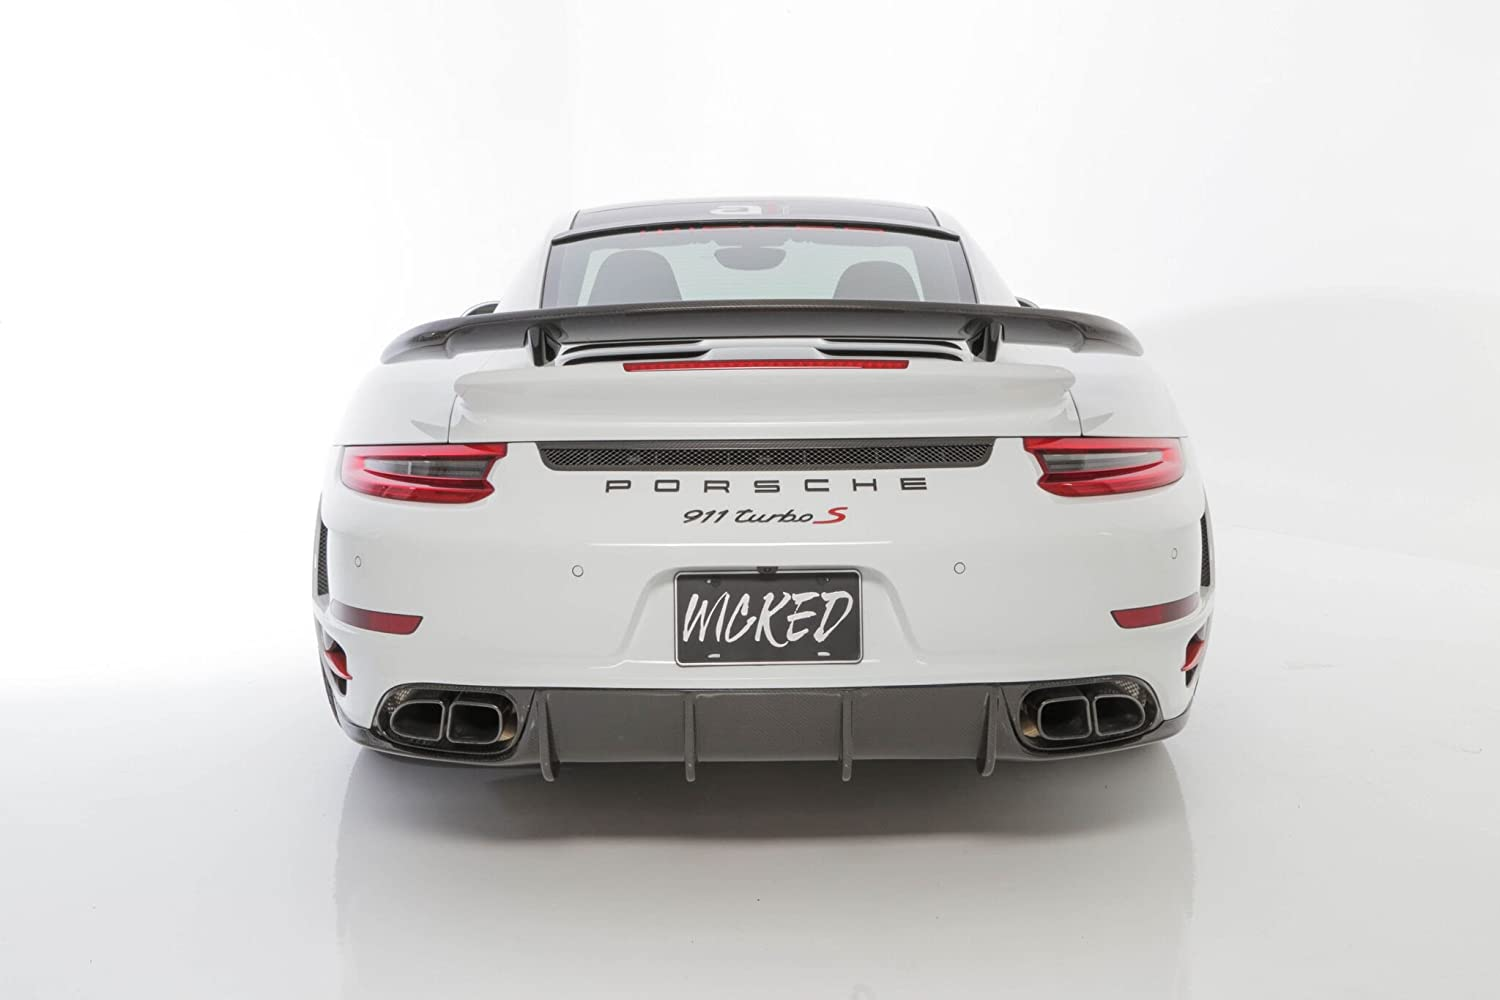 Amazon.com: Porsche Turbo / S Aggressive Rear bumper w/ 991.2 LED Taillights: Automotive